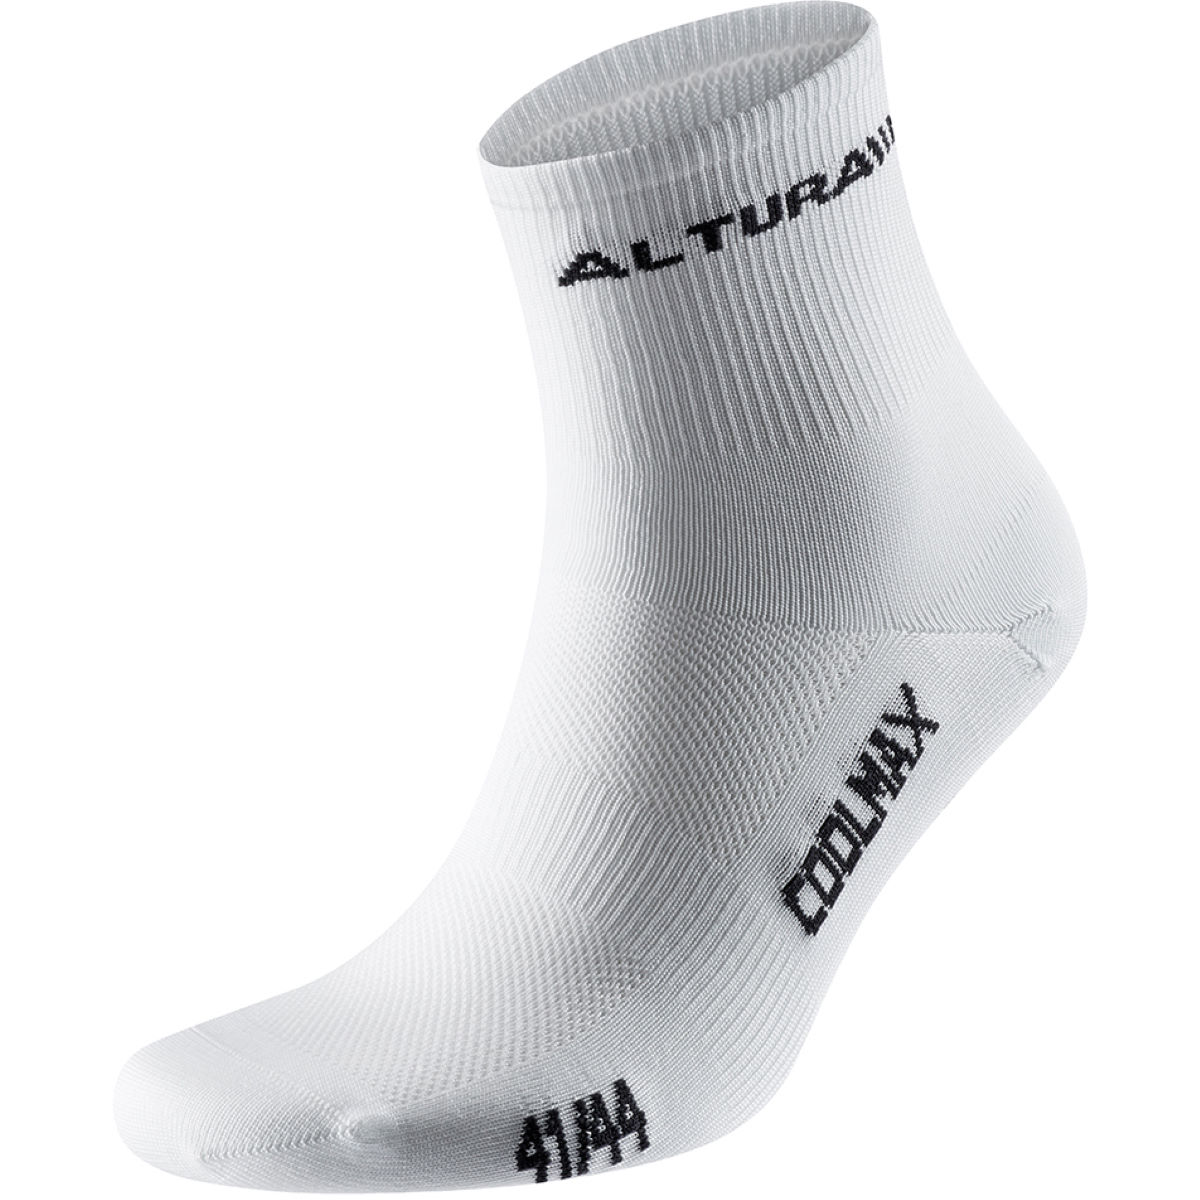 Altura Coolmax Cycling Socks - 3 Pack